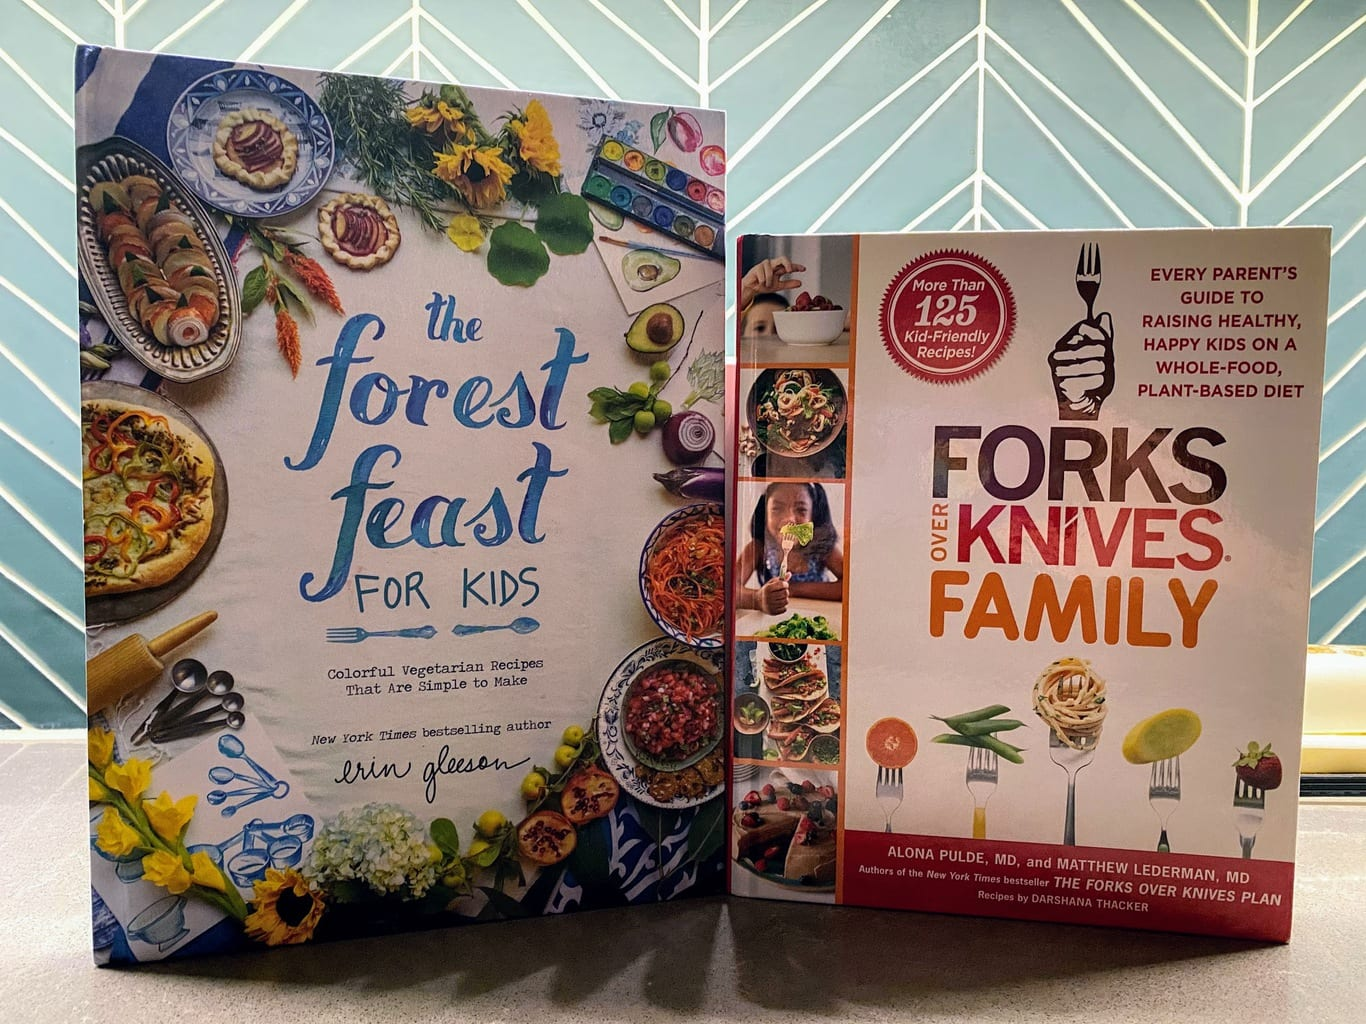 two vegan cookbooks: the forest feast for kids and forks over knives for family